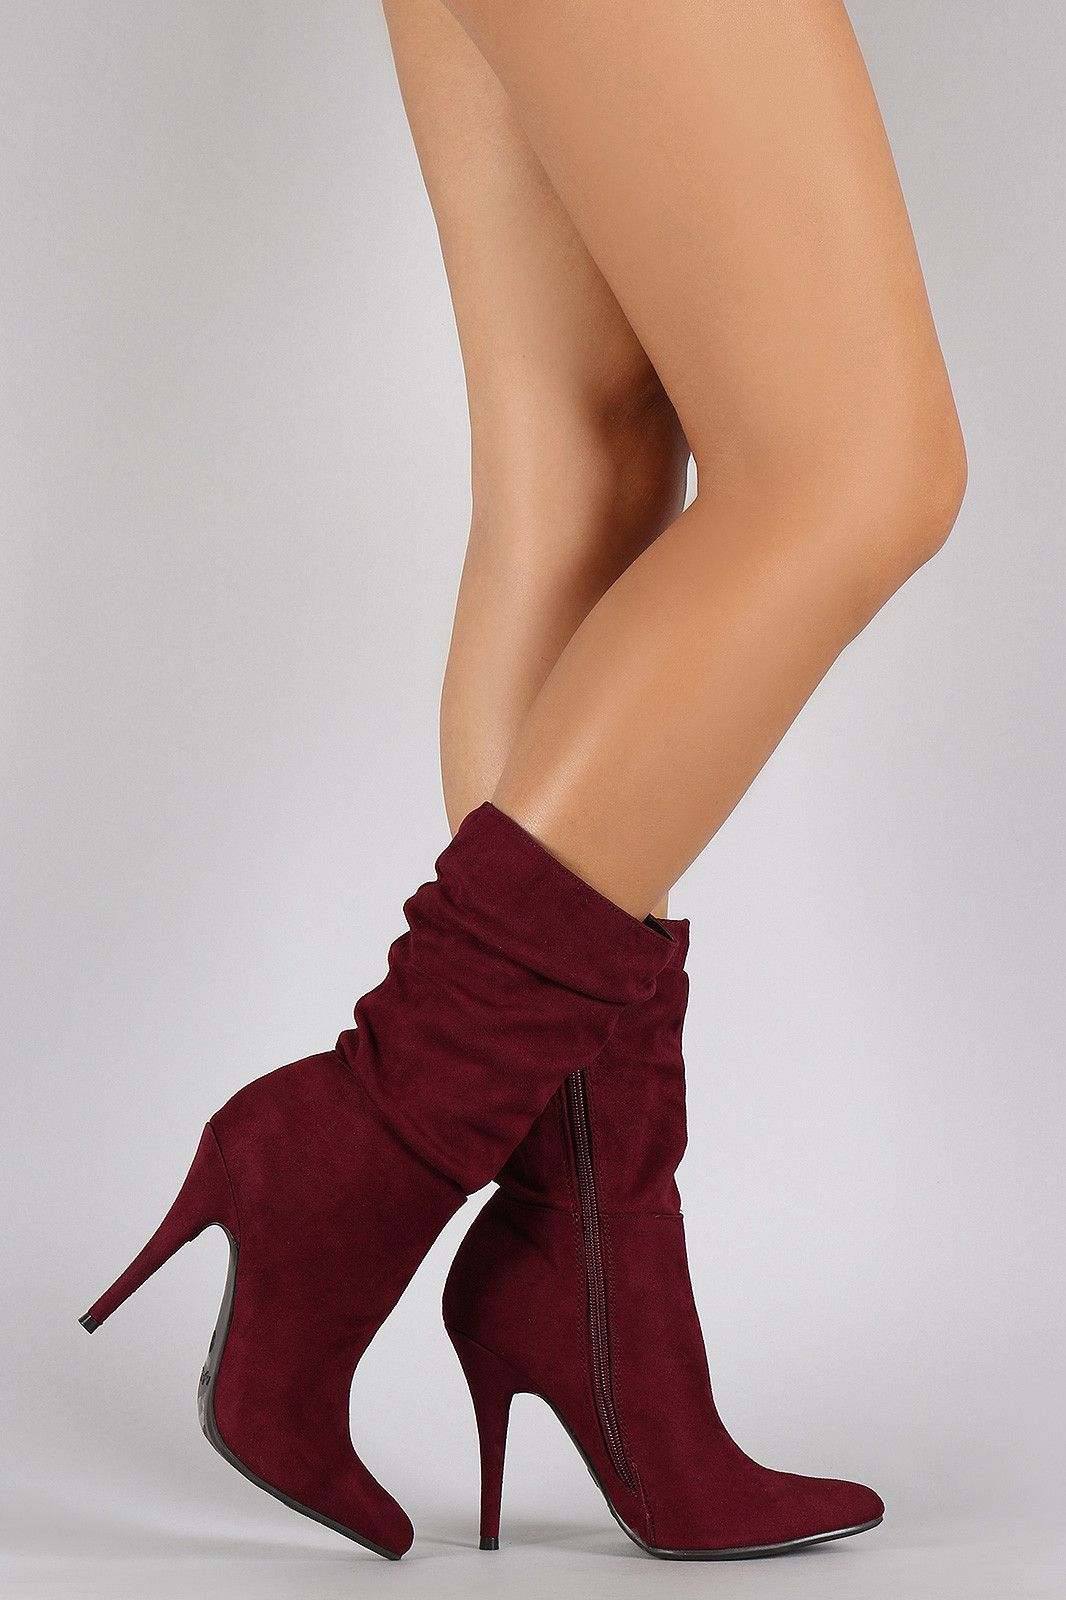 Anne Michelle Suede Slouchy Pointy Toe Mid Calf Boots. High HeelsHigh ...